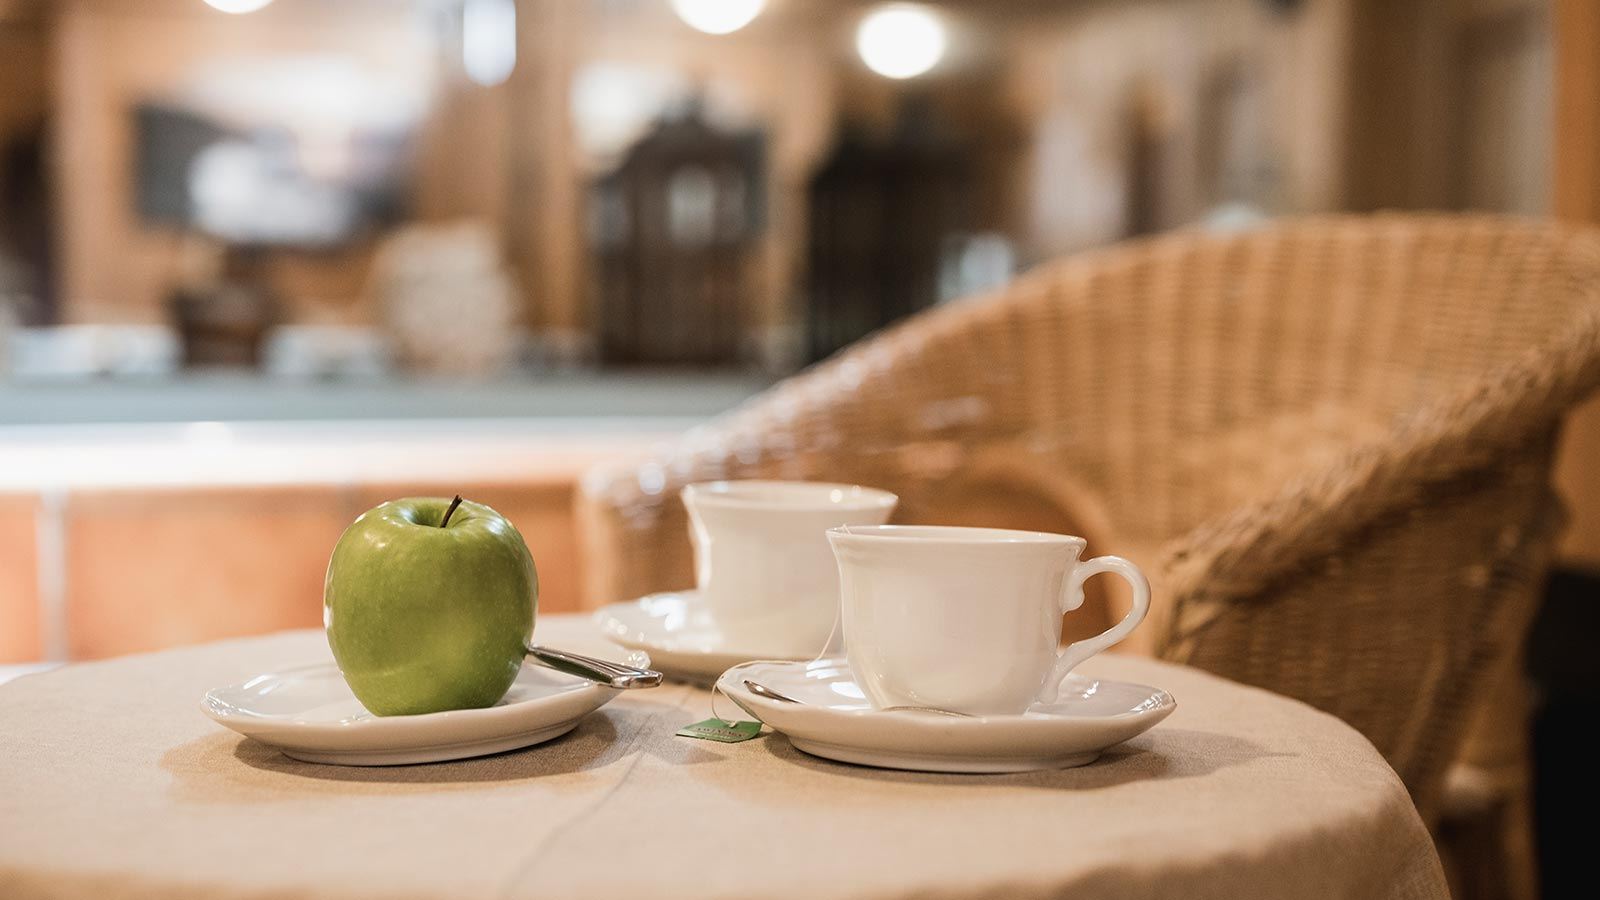 Detail of two cups of tea and a green apple at Hotel in Arabba with wellness center